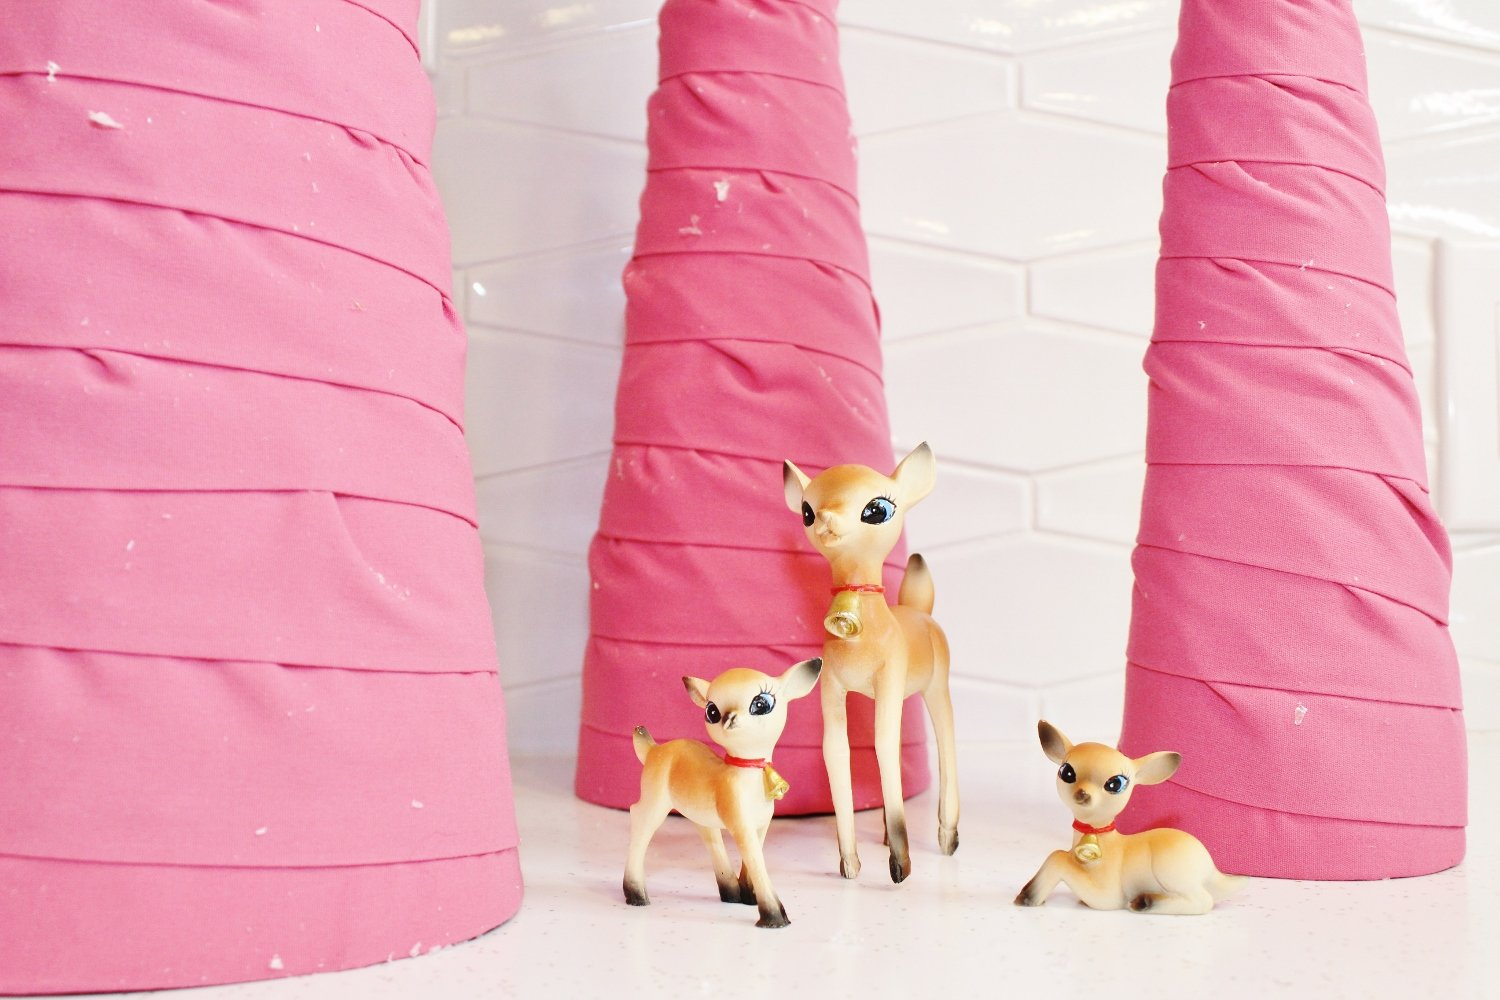 Deer figurines surrounded by pink fabric cone tree Christmas decor